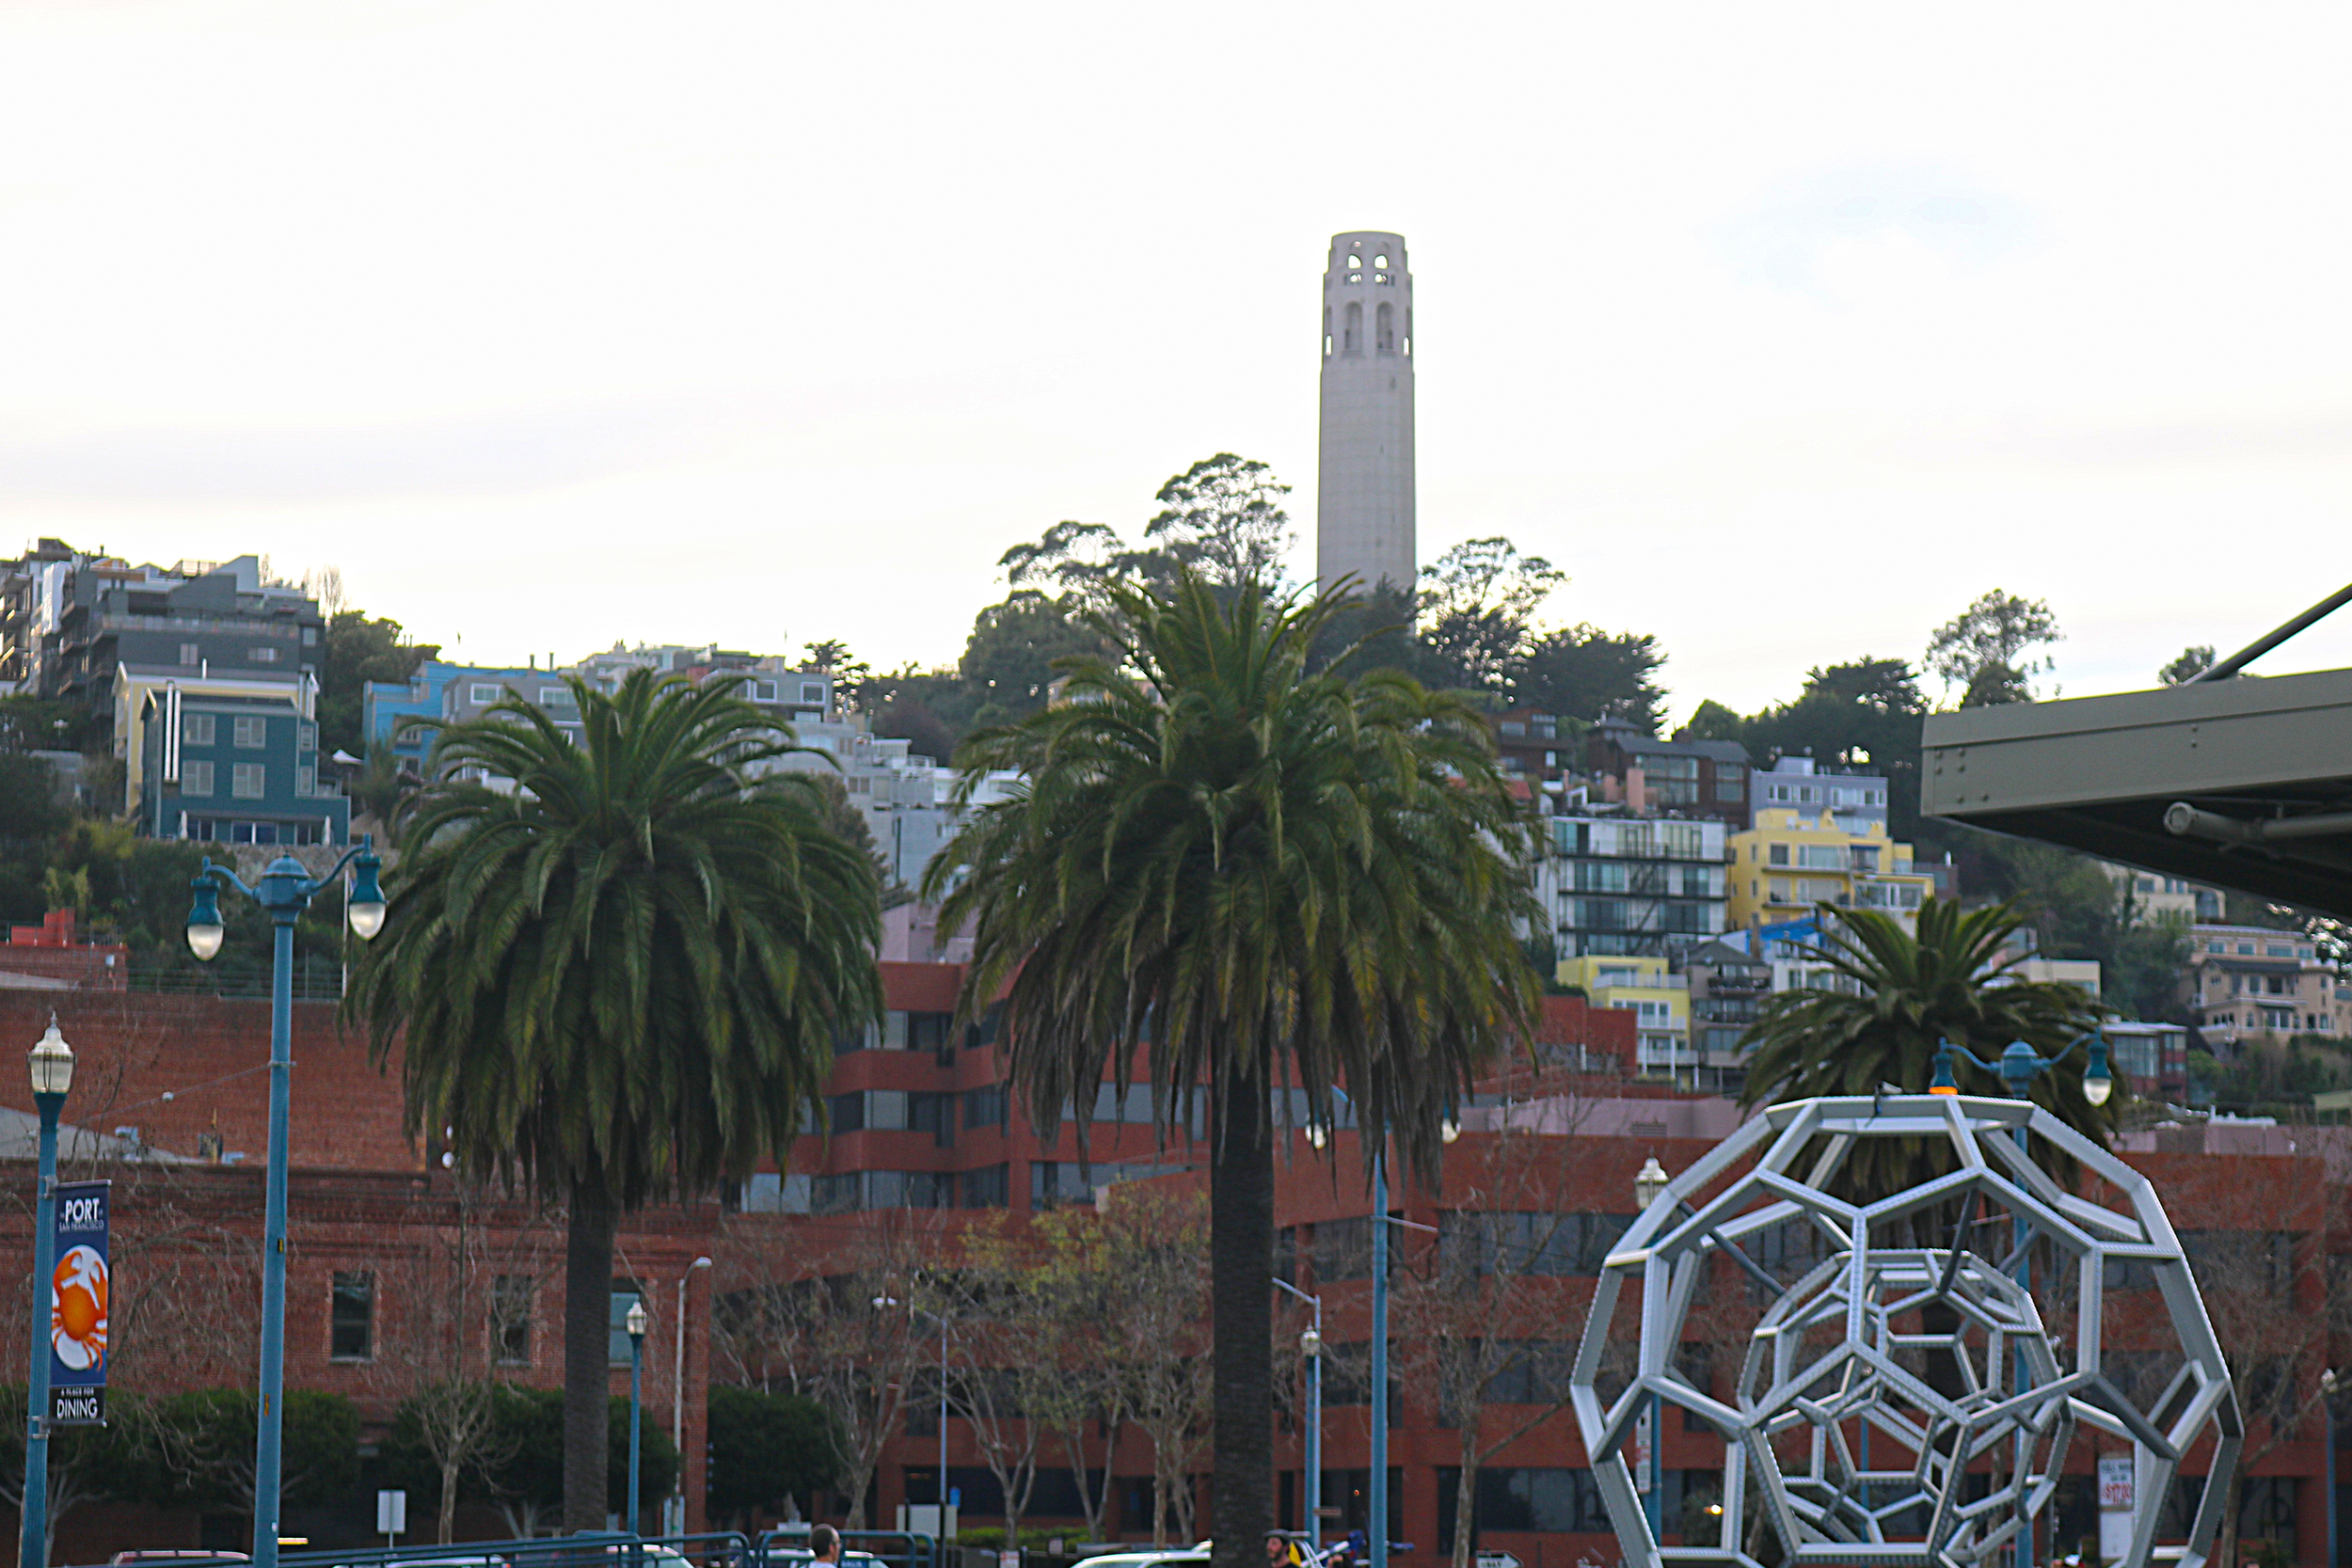 exploratorium-sf.jpg